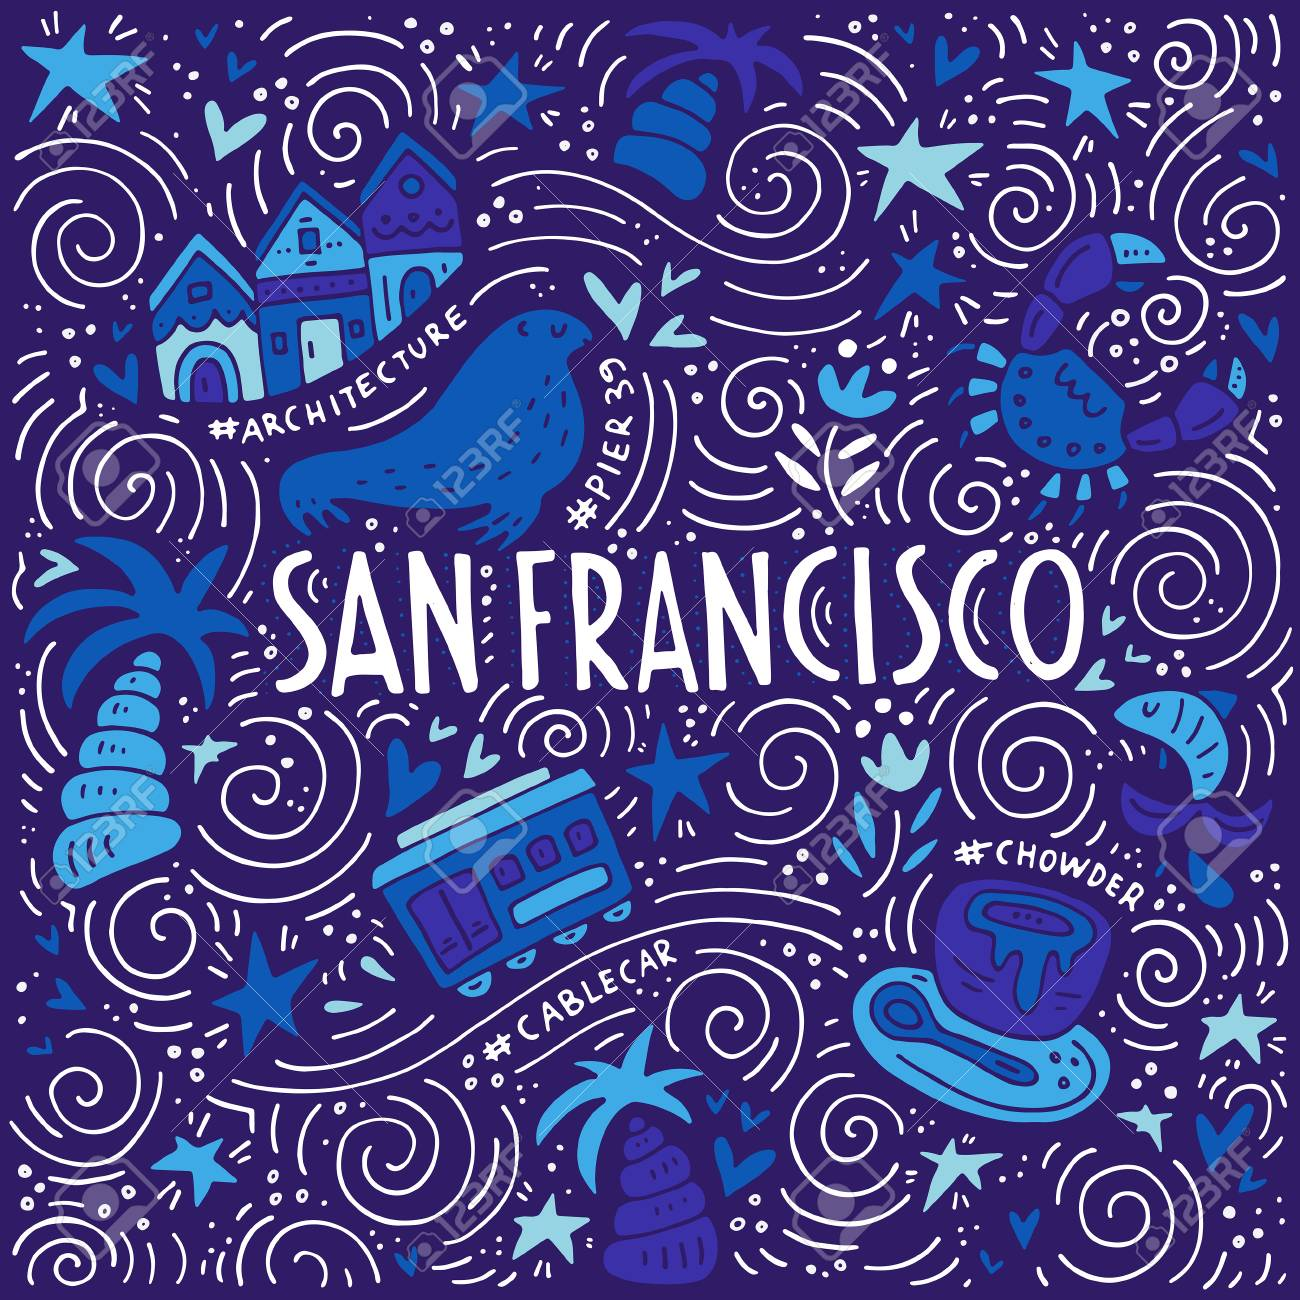 Illustration of San Fransisco with symbols of the city. Vector doodle illustration. - 74915746